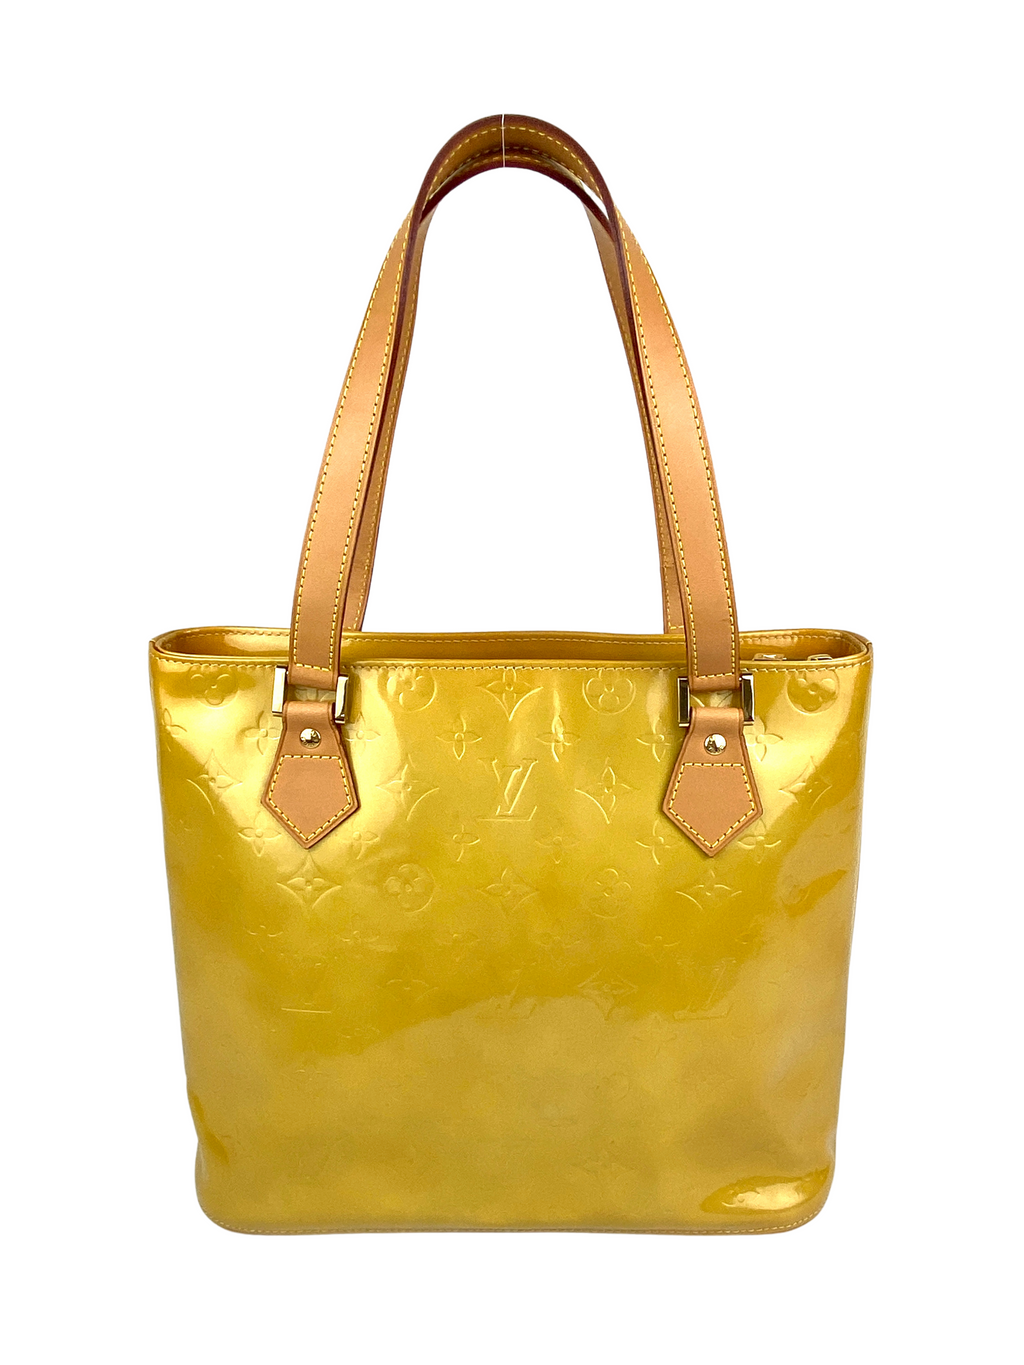 LOUIS VUITTON - HOUSTON MONOGRAM VERNIS YELLOW